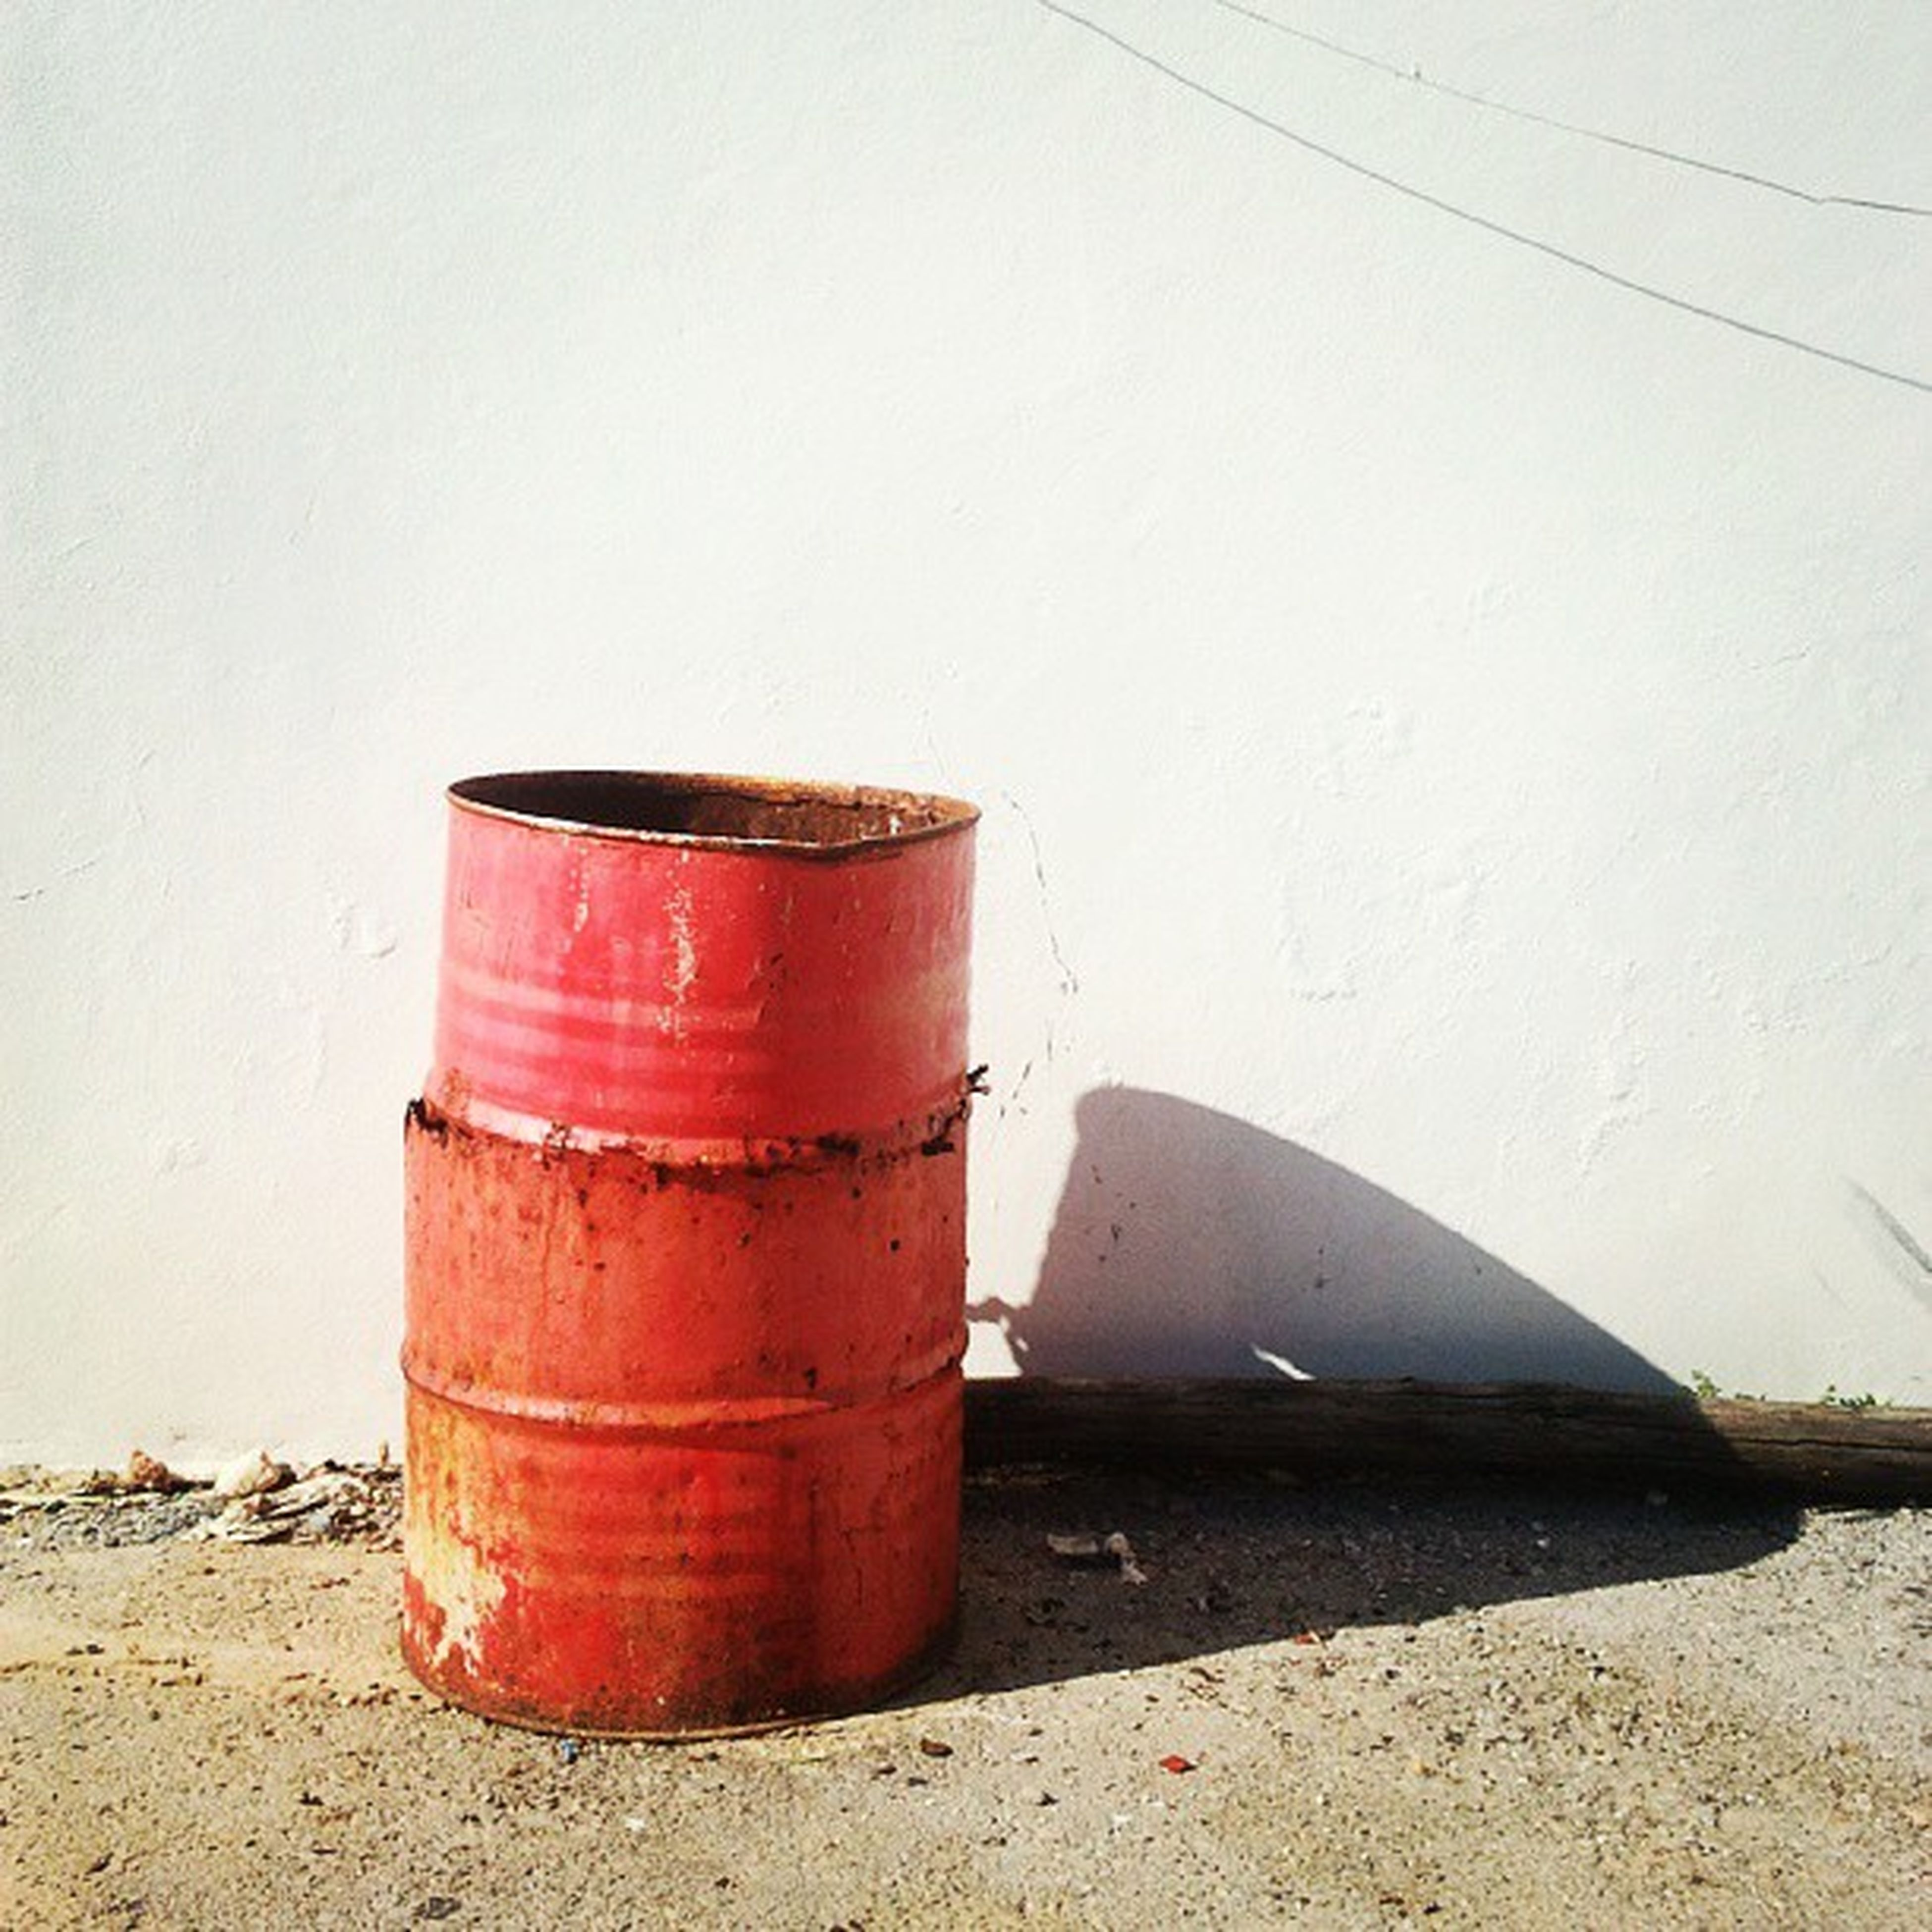 red, close-up, wall - building feature, container, still life, rusty, metal, no people, outdoors, day, built structure, old, single object, wall, abandoned, sunlight, metallic, building exterior, weathered, architecture